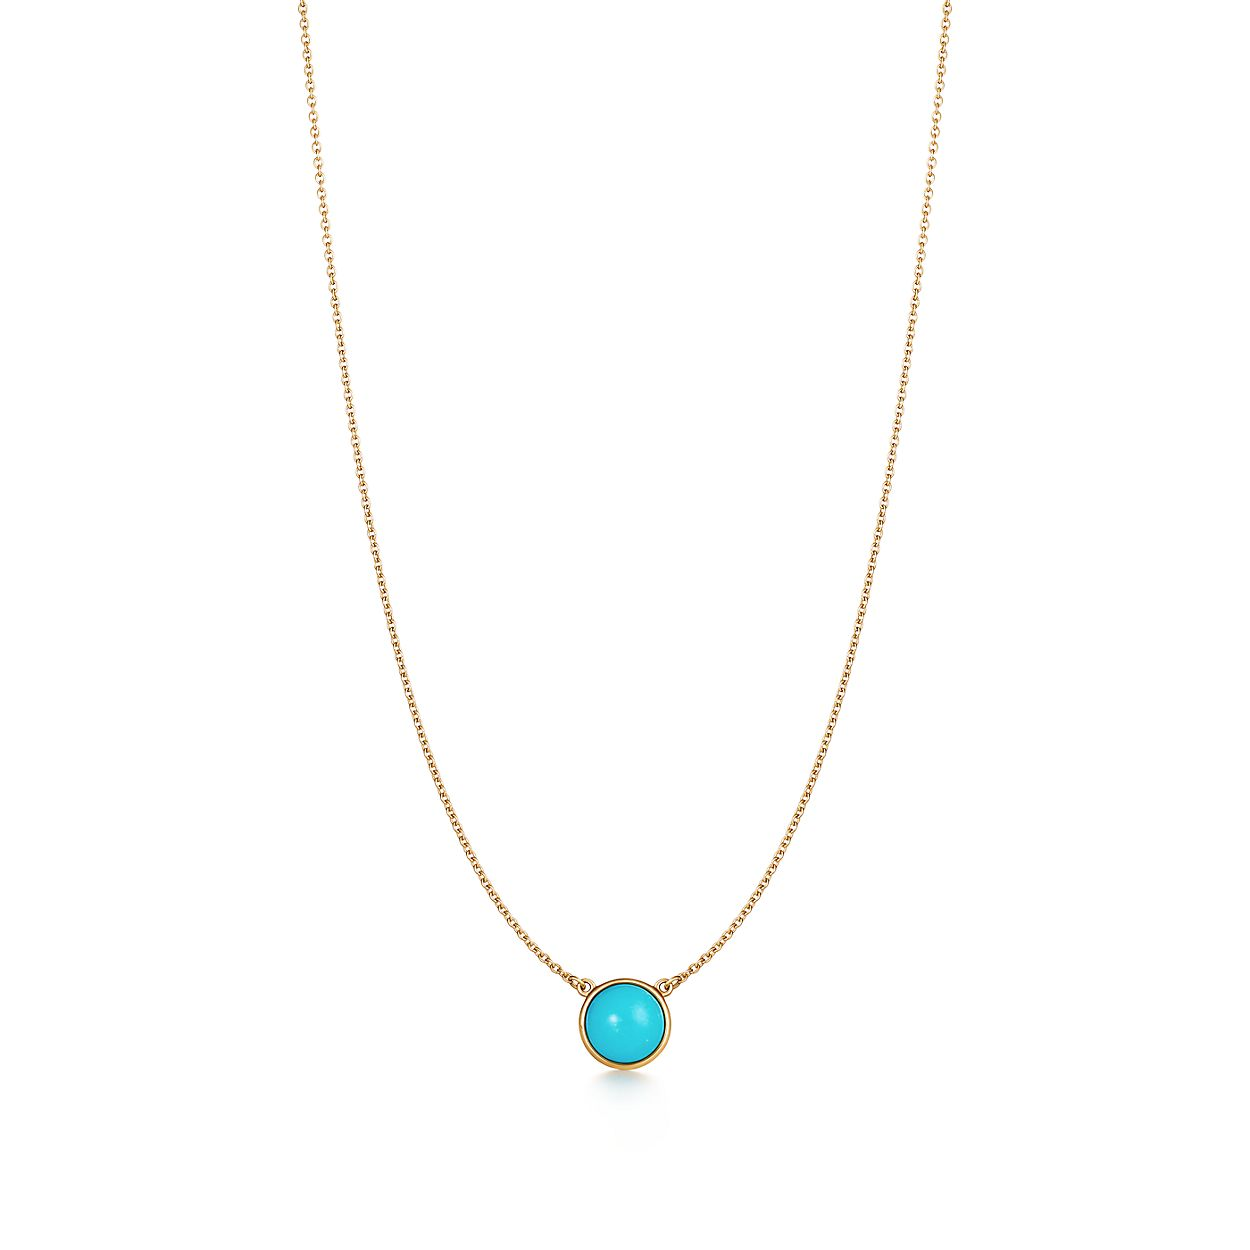 Elsa Peretti® Color by the Yard pendant in 18k gold with turquoise ... e68ab2846